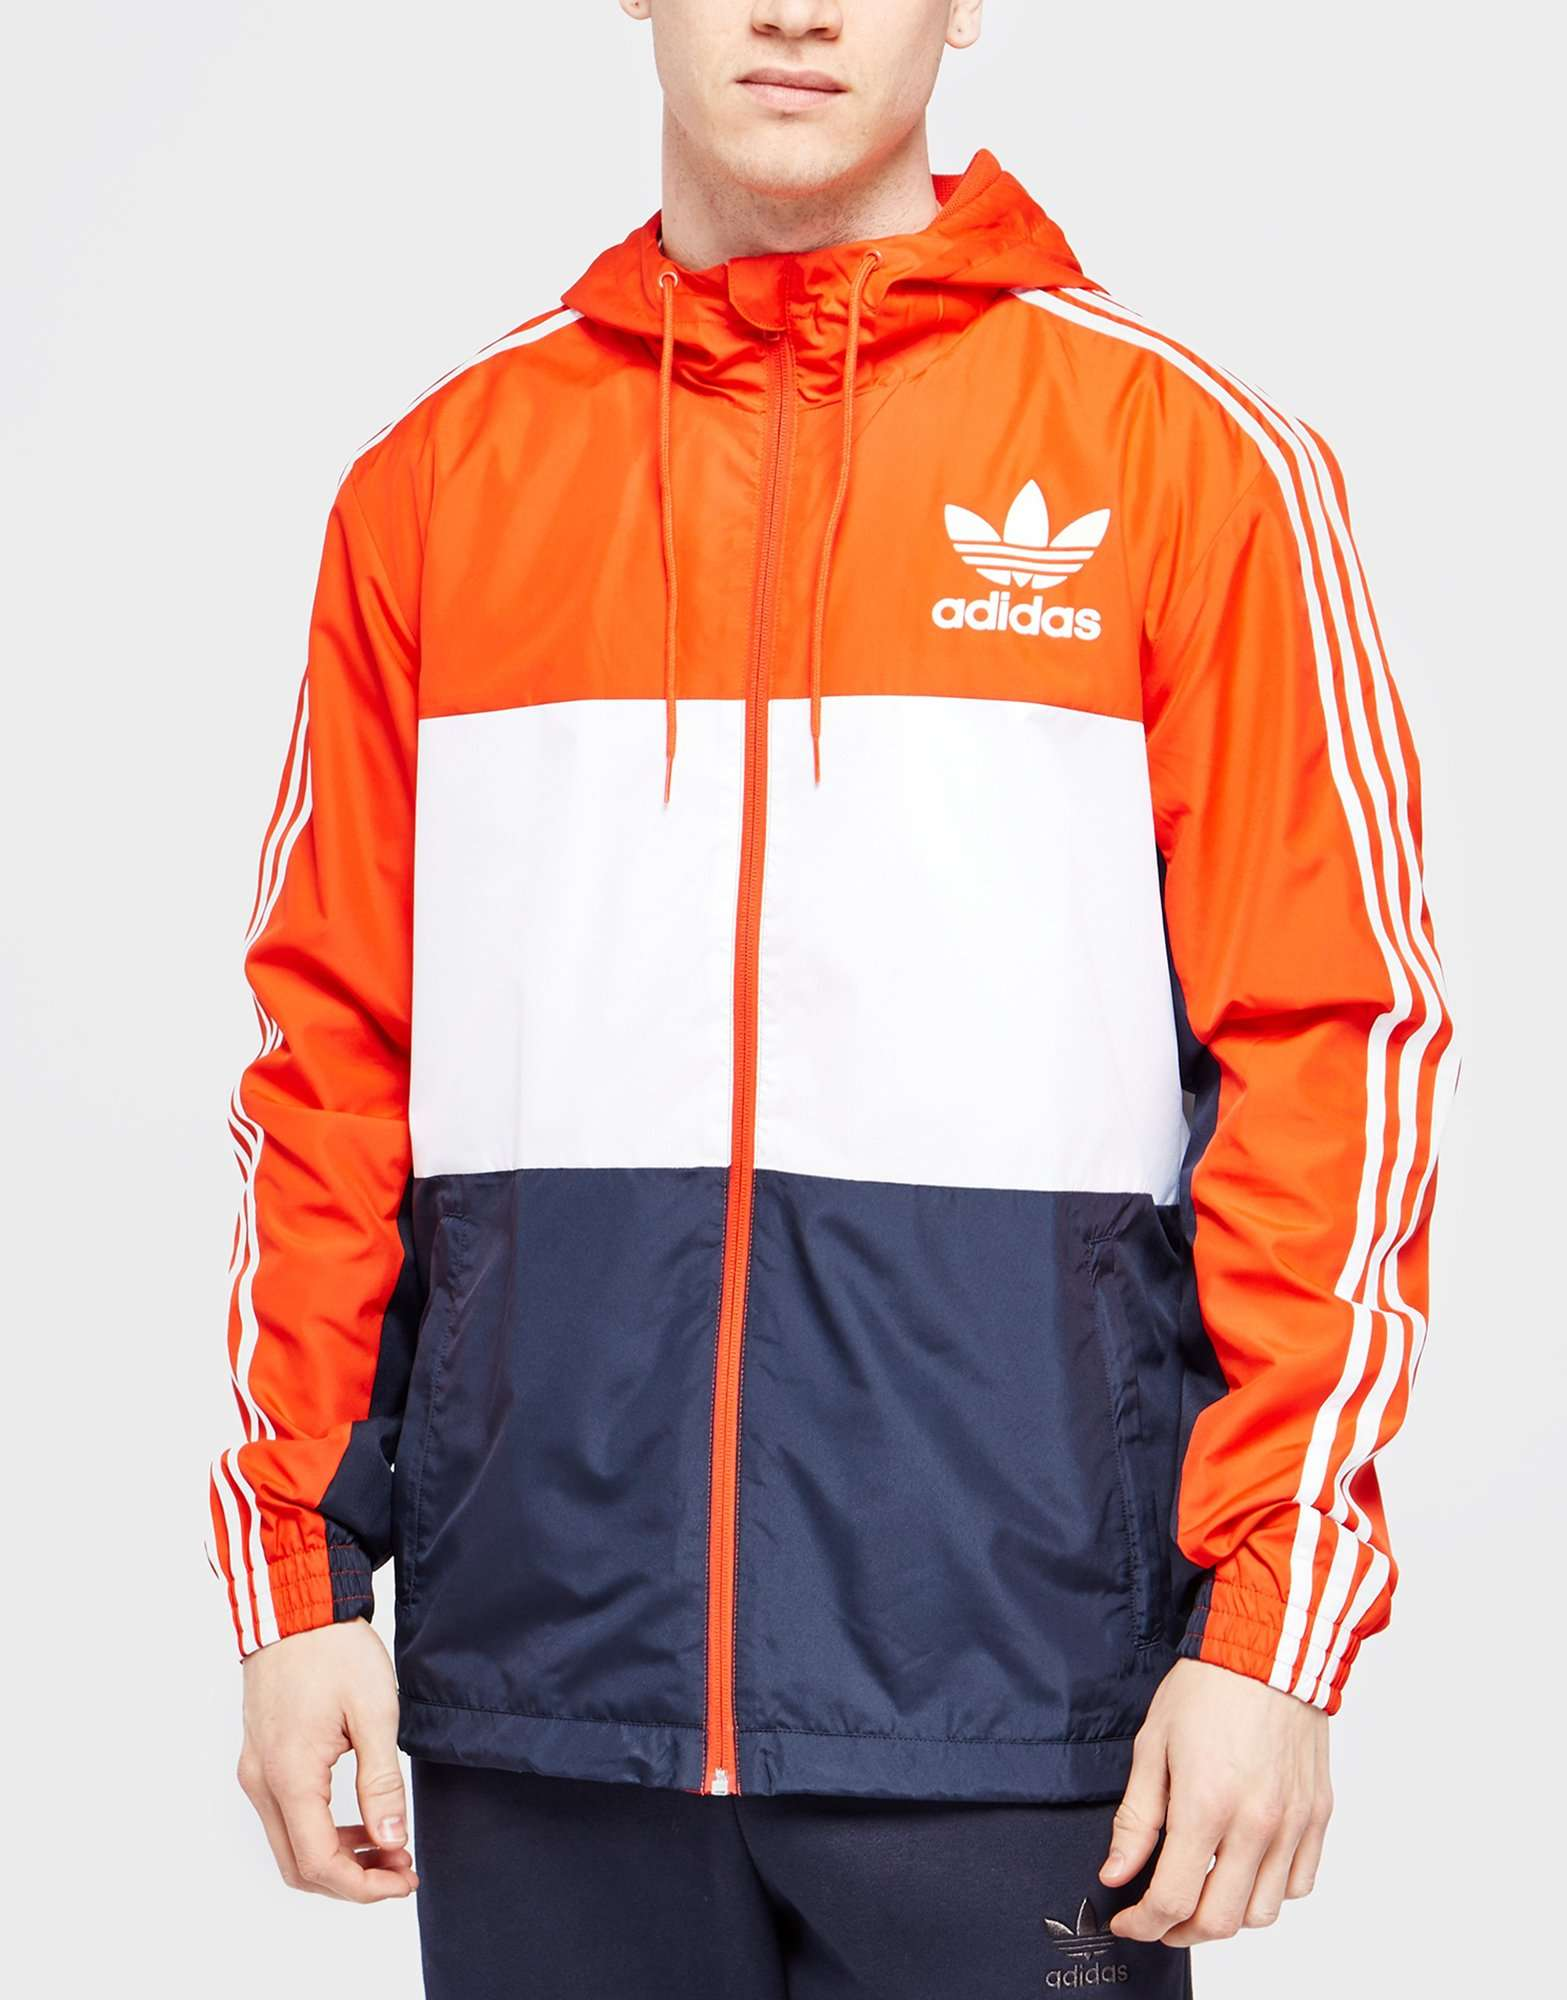 Adidas Originals California Windbreaker Lightweight Jacket